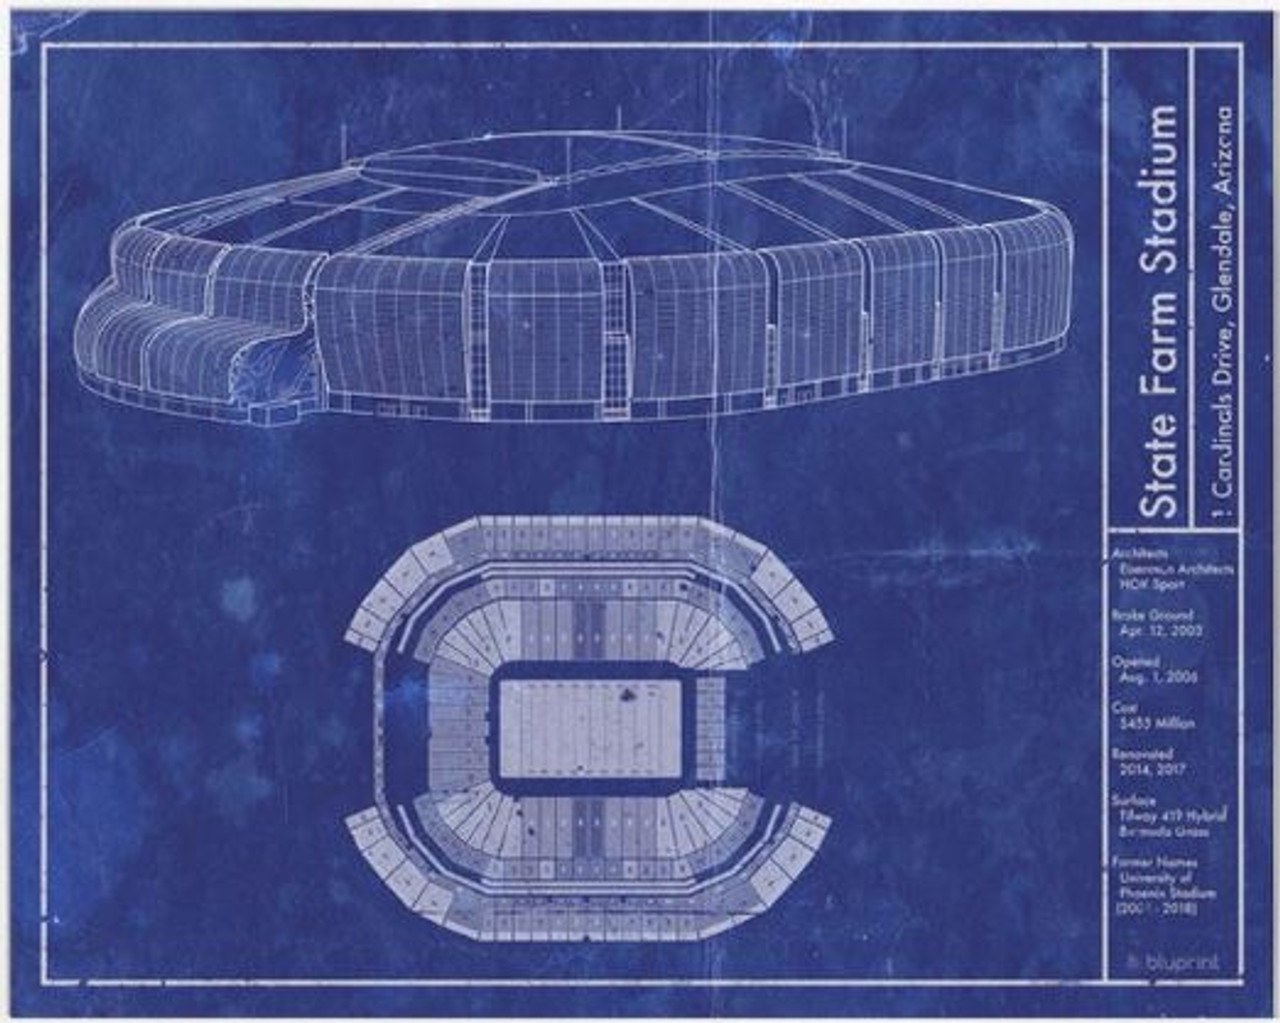 State Farm Stadium - Arizona Cardinals Blueprint Poster